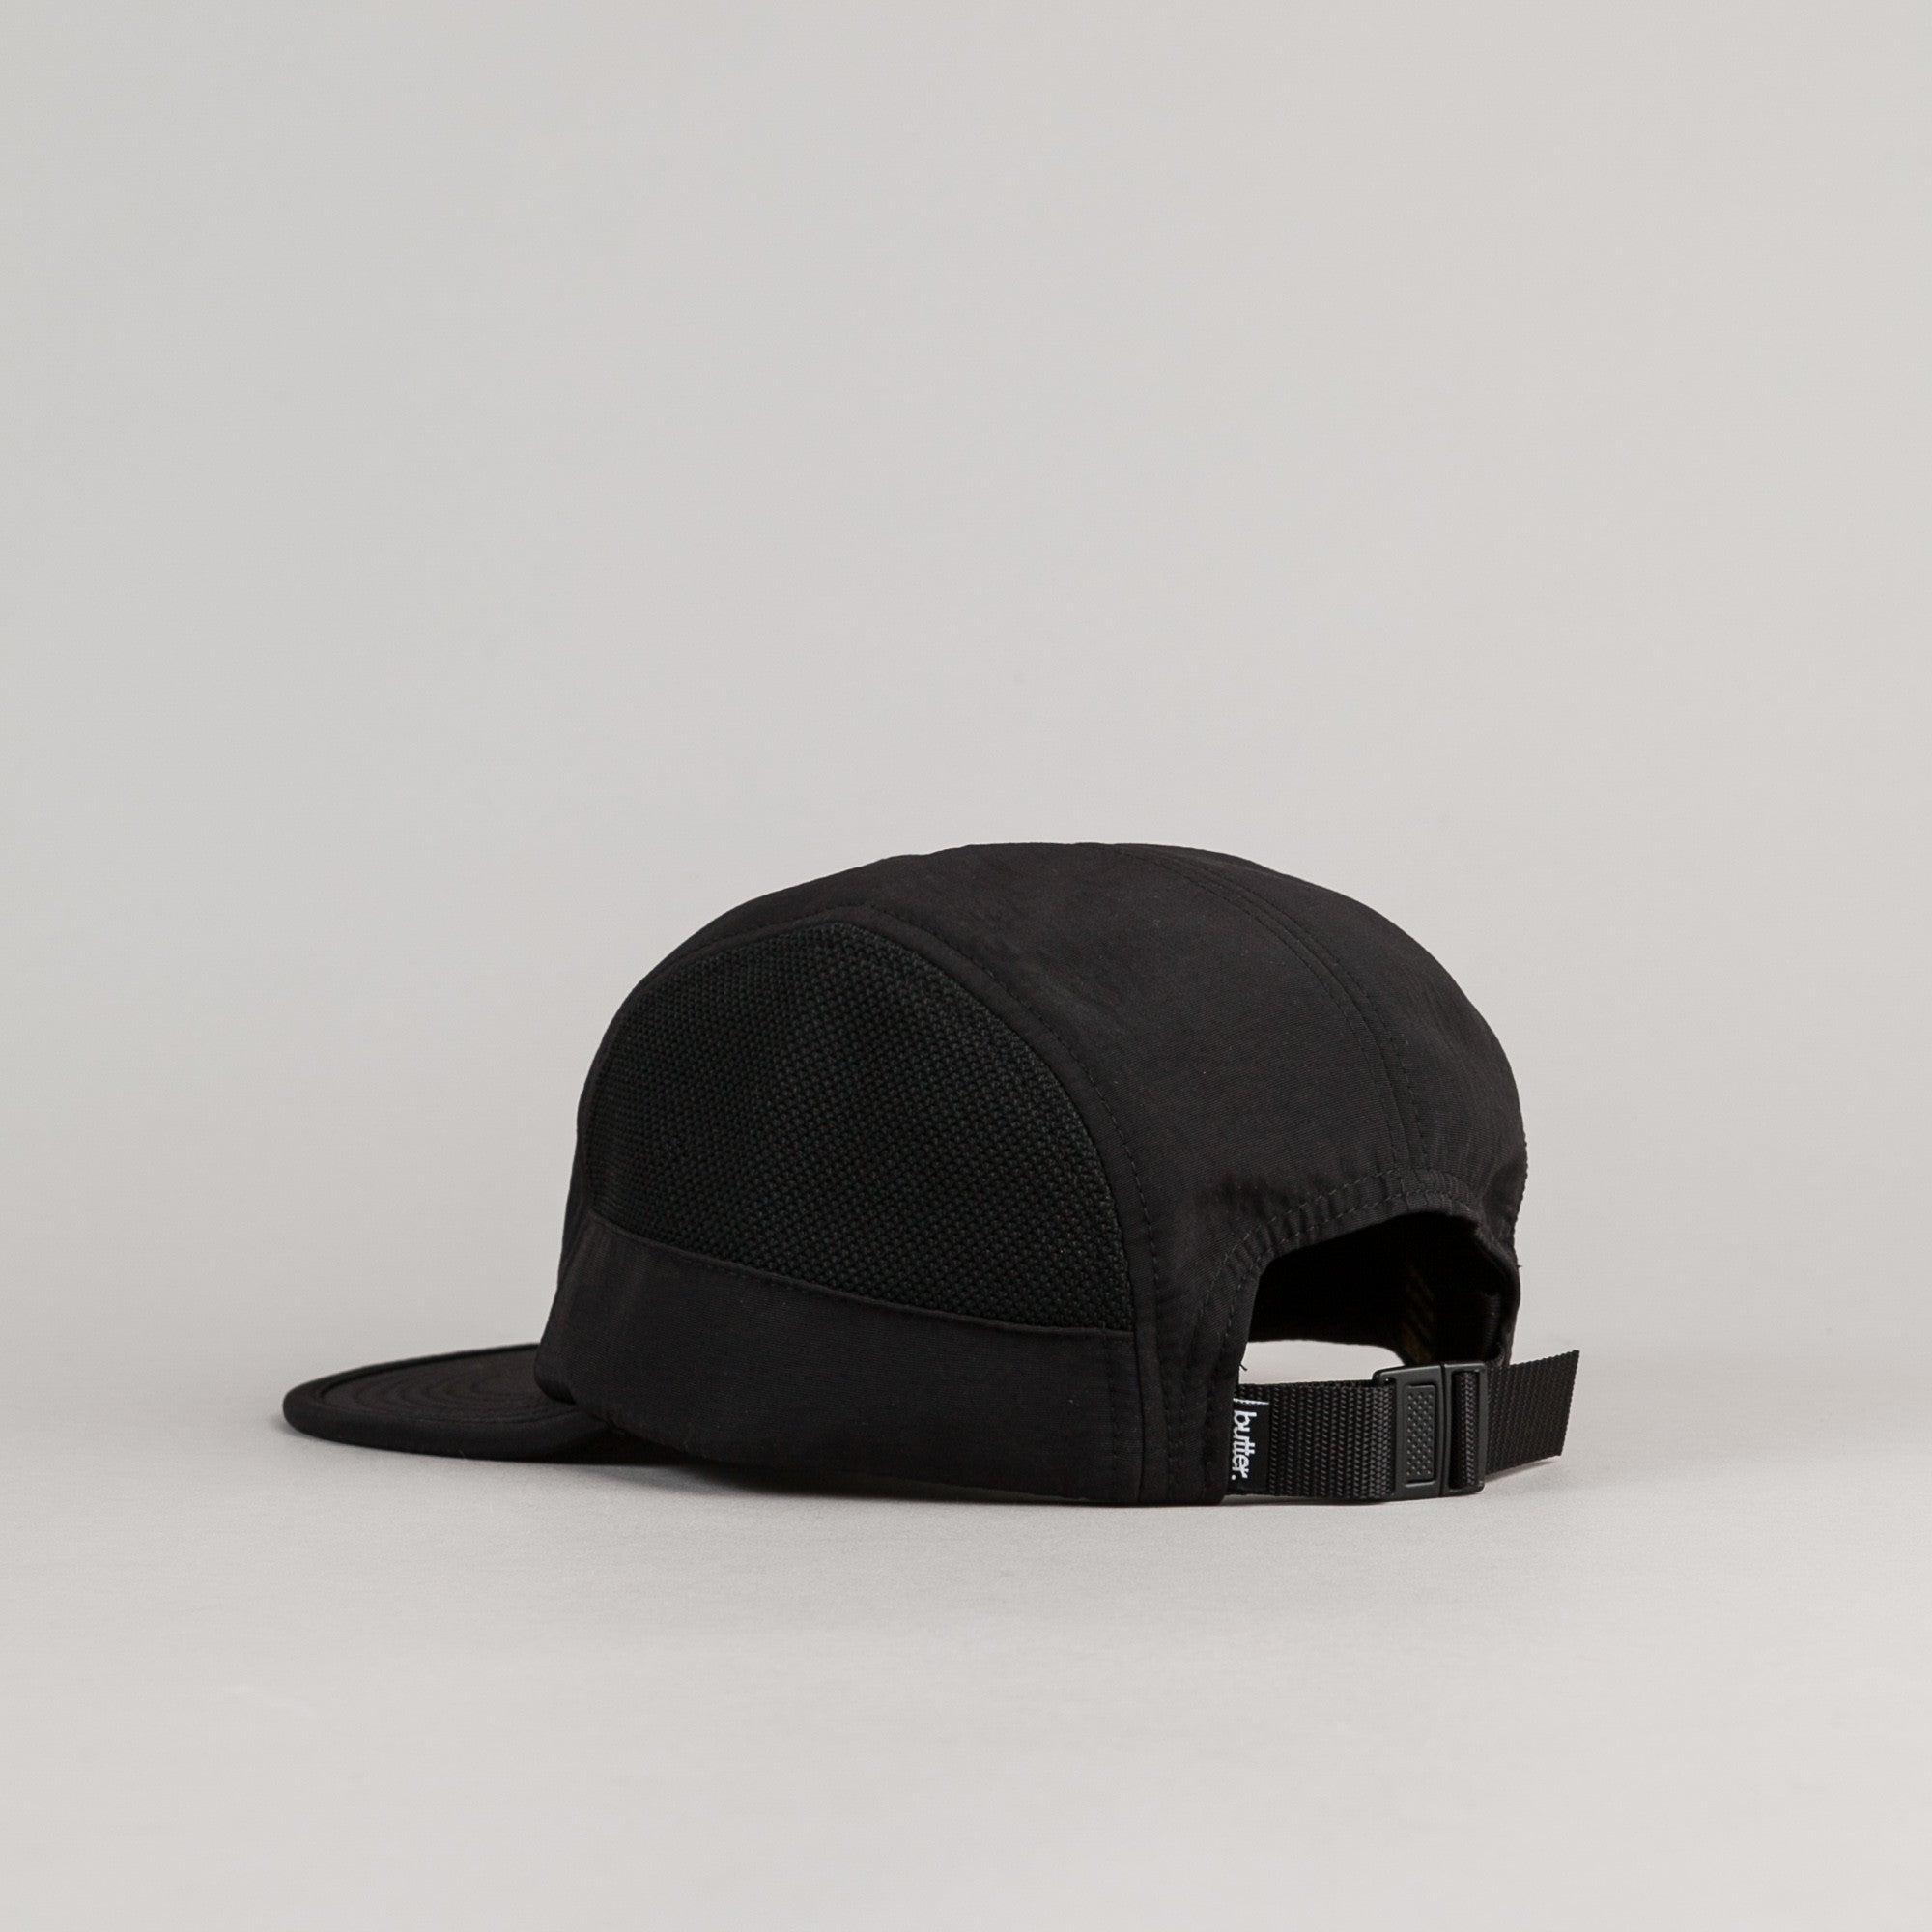 Butter Goods Athletic 5 Panel Camp Cap - Black